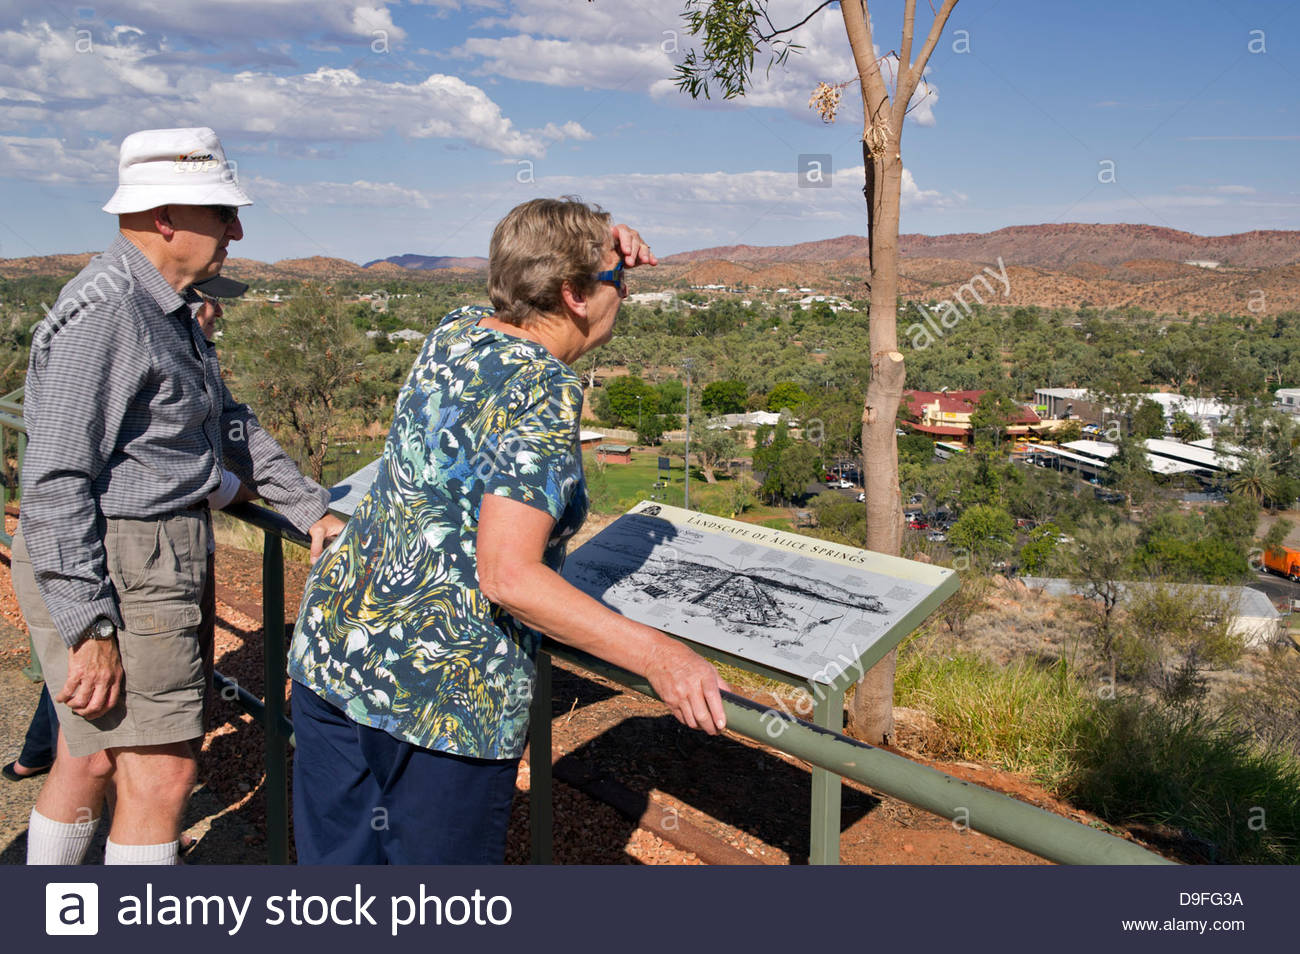 Top of Anzac Hill, overlooking Alice Springs; Northern Territories, Australia - Stock Image